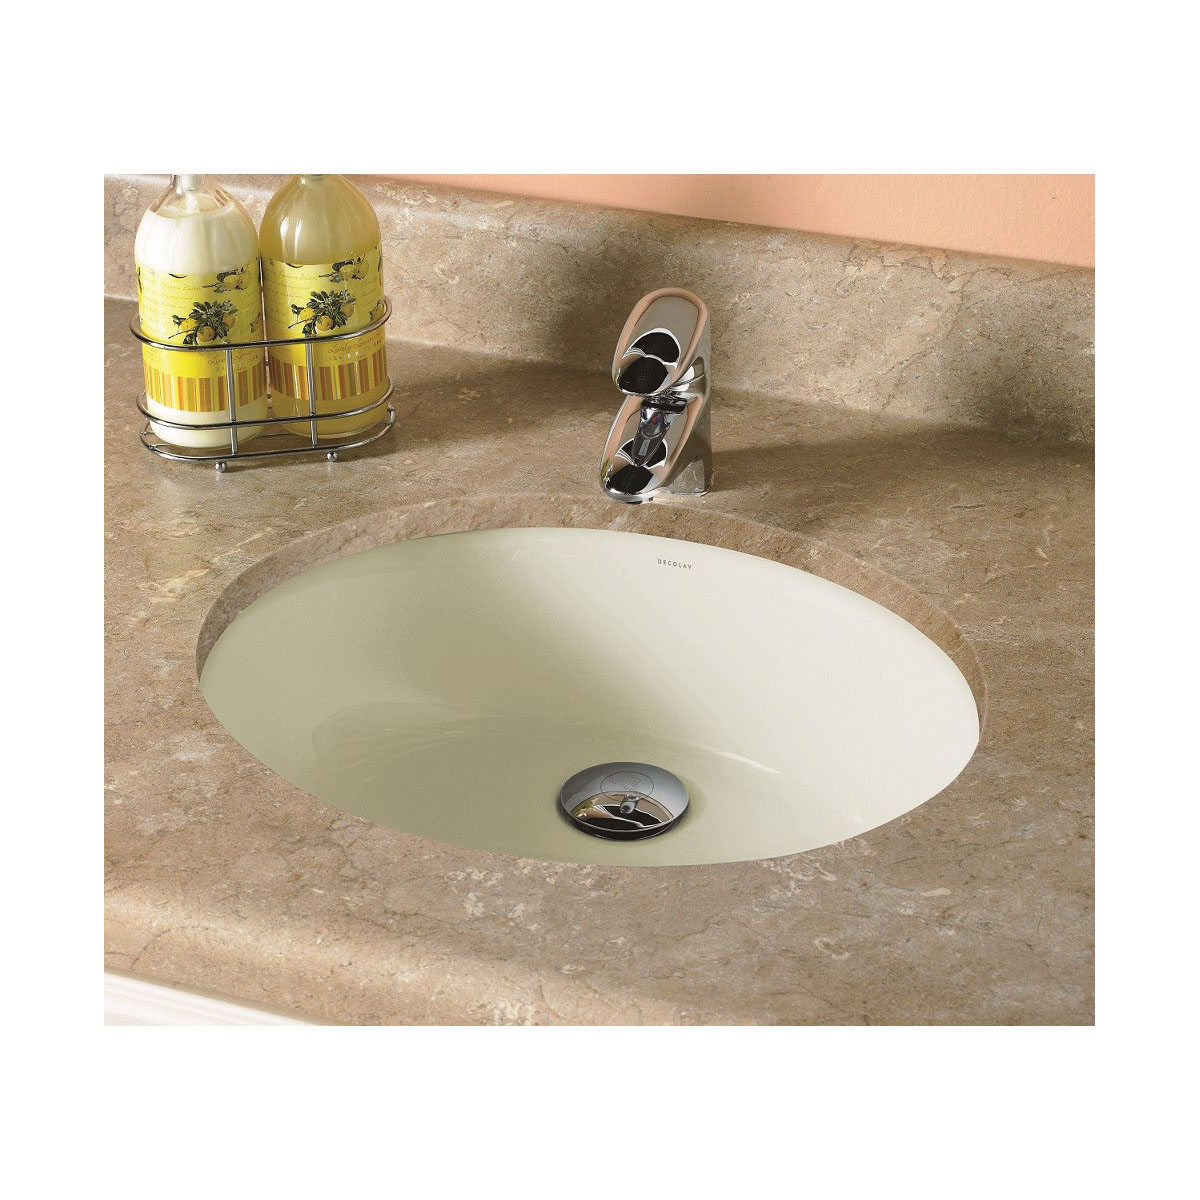 DECOLAV® 1401-CBN Classically Redefined® Bathroom Sink With Overflow, Oval, 19.25 in W x 16.25 in D x 7.13 in H, Under Mount, Vitreous China, Ceramic Biscuit, Import